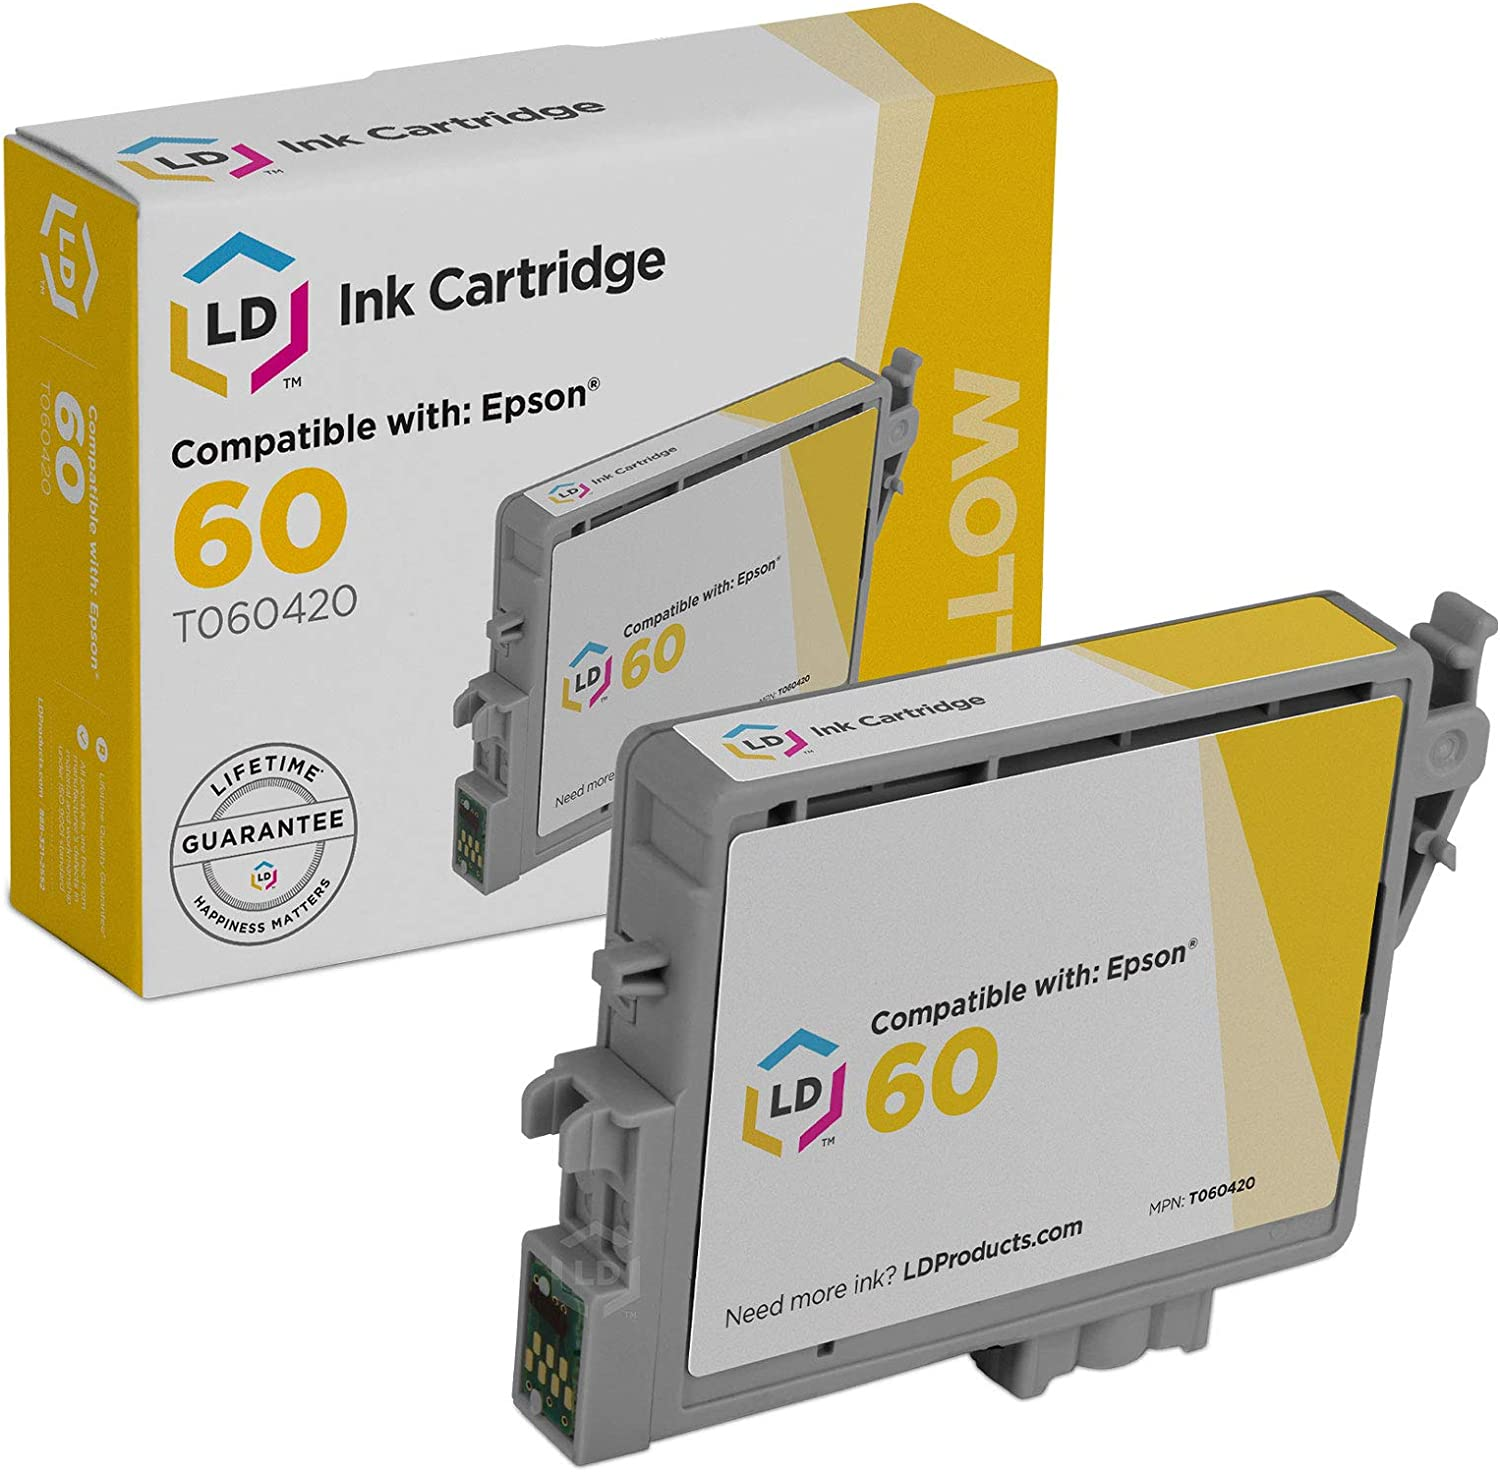 LD Products Remanufactured Ink Cartridge Replacement for Epson T0604 ( Yellow )